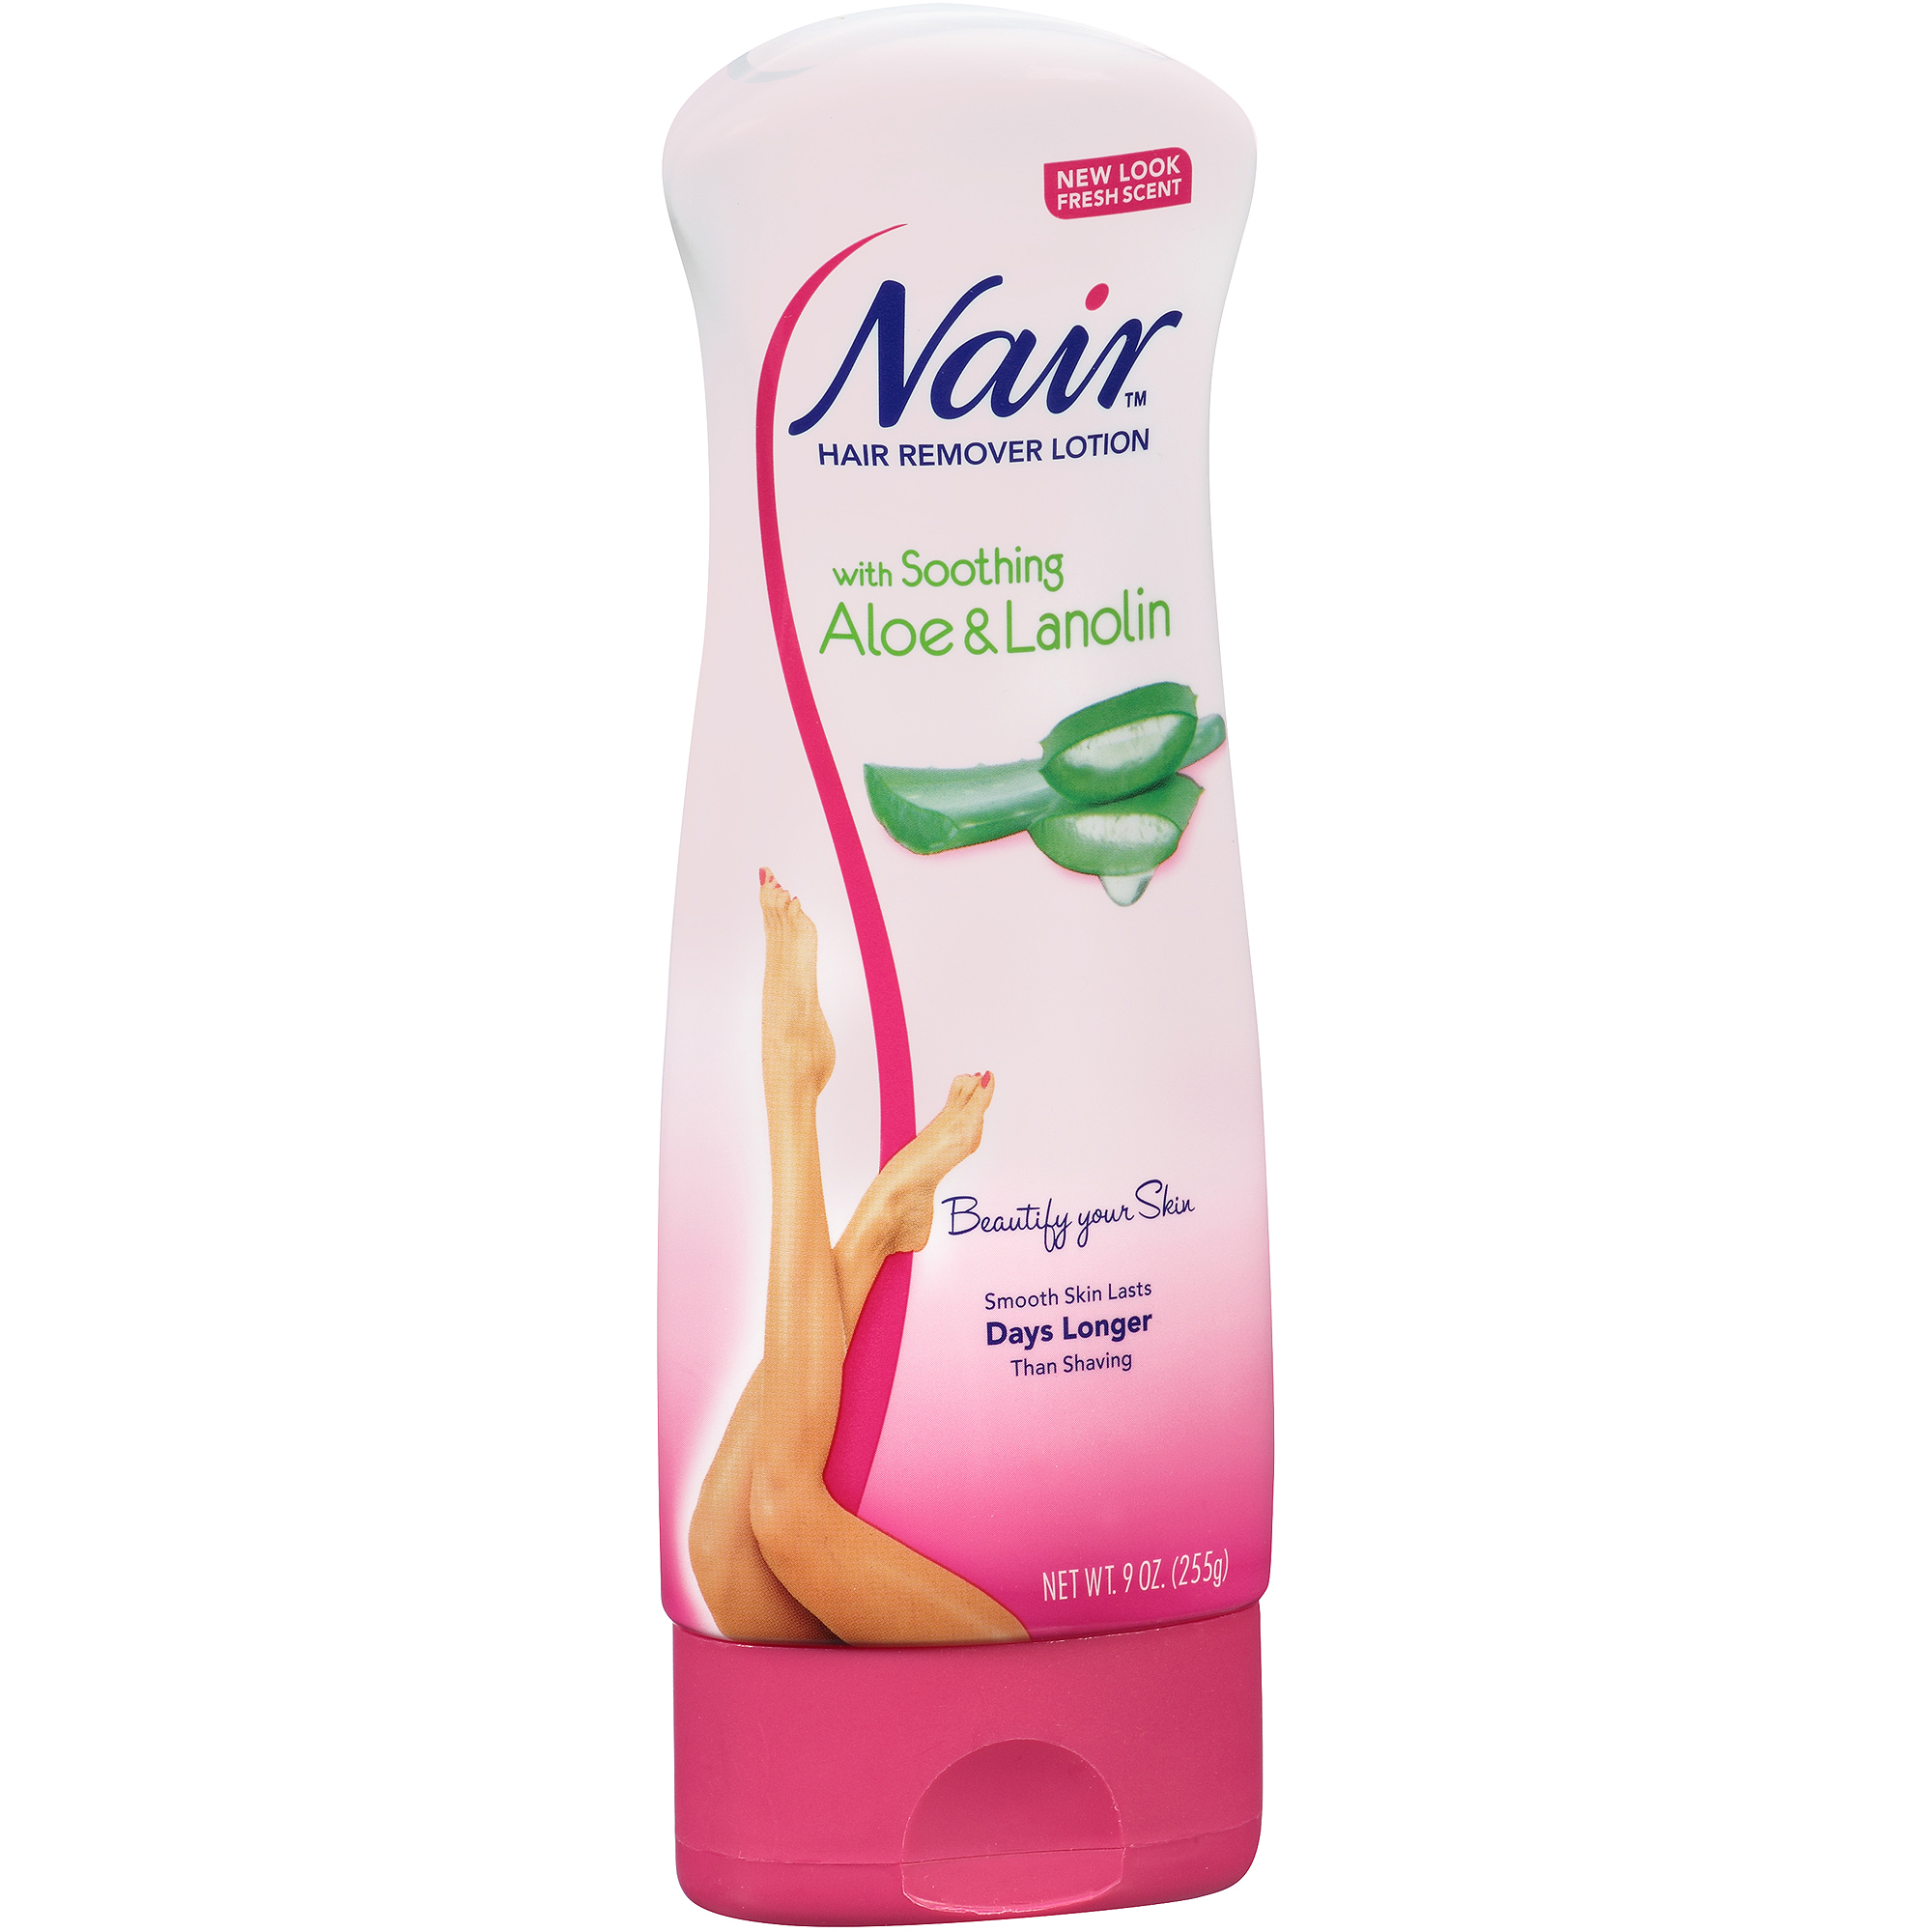 Nair Hair Remover Lotion with Aloe & Lanolin, 9 oz